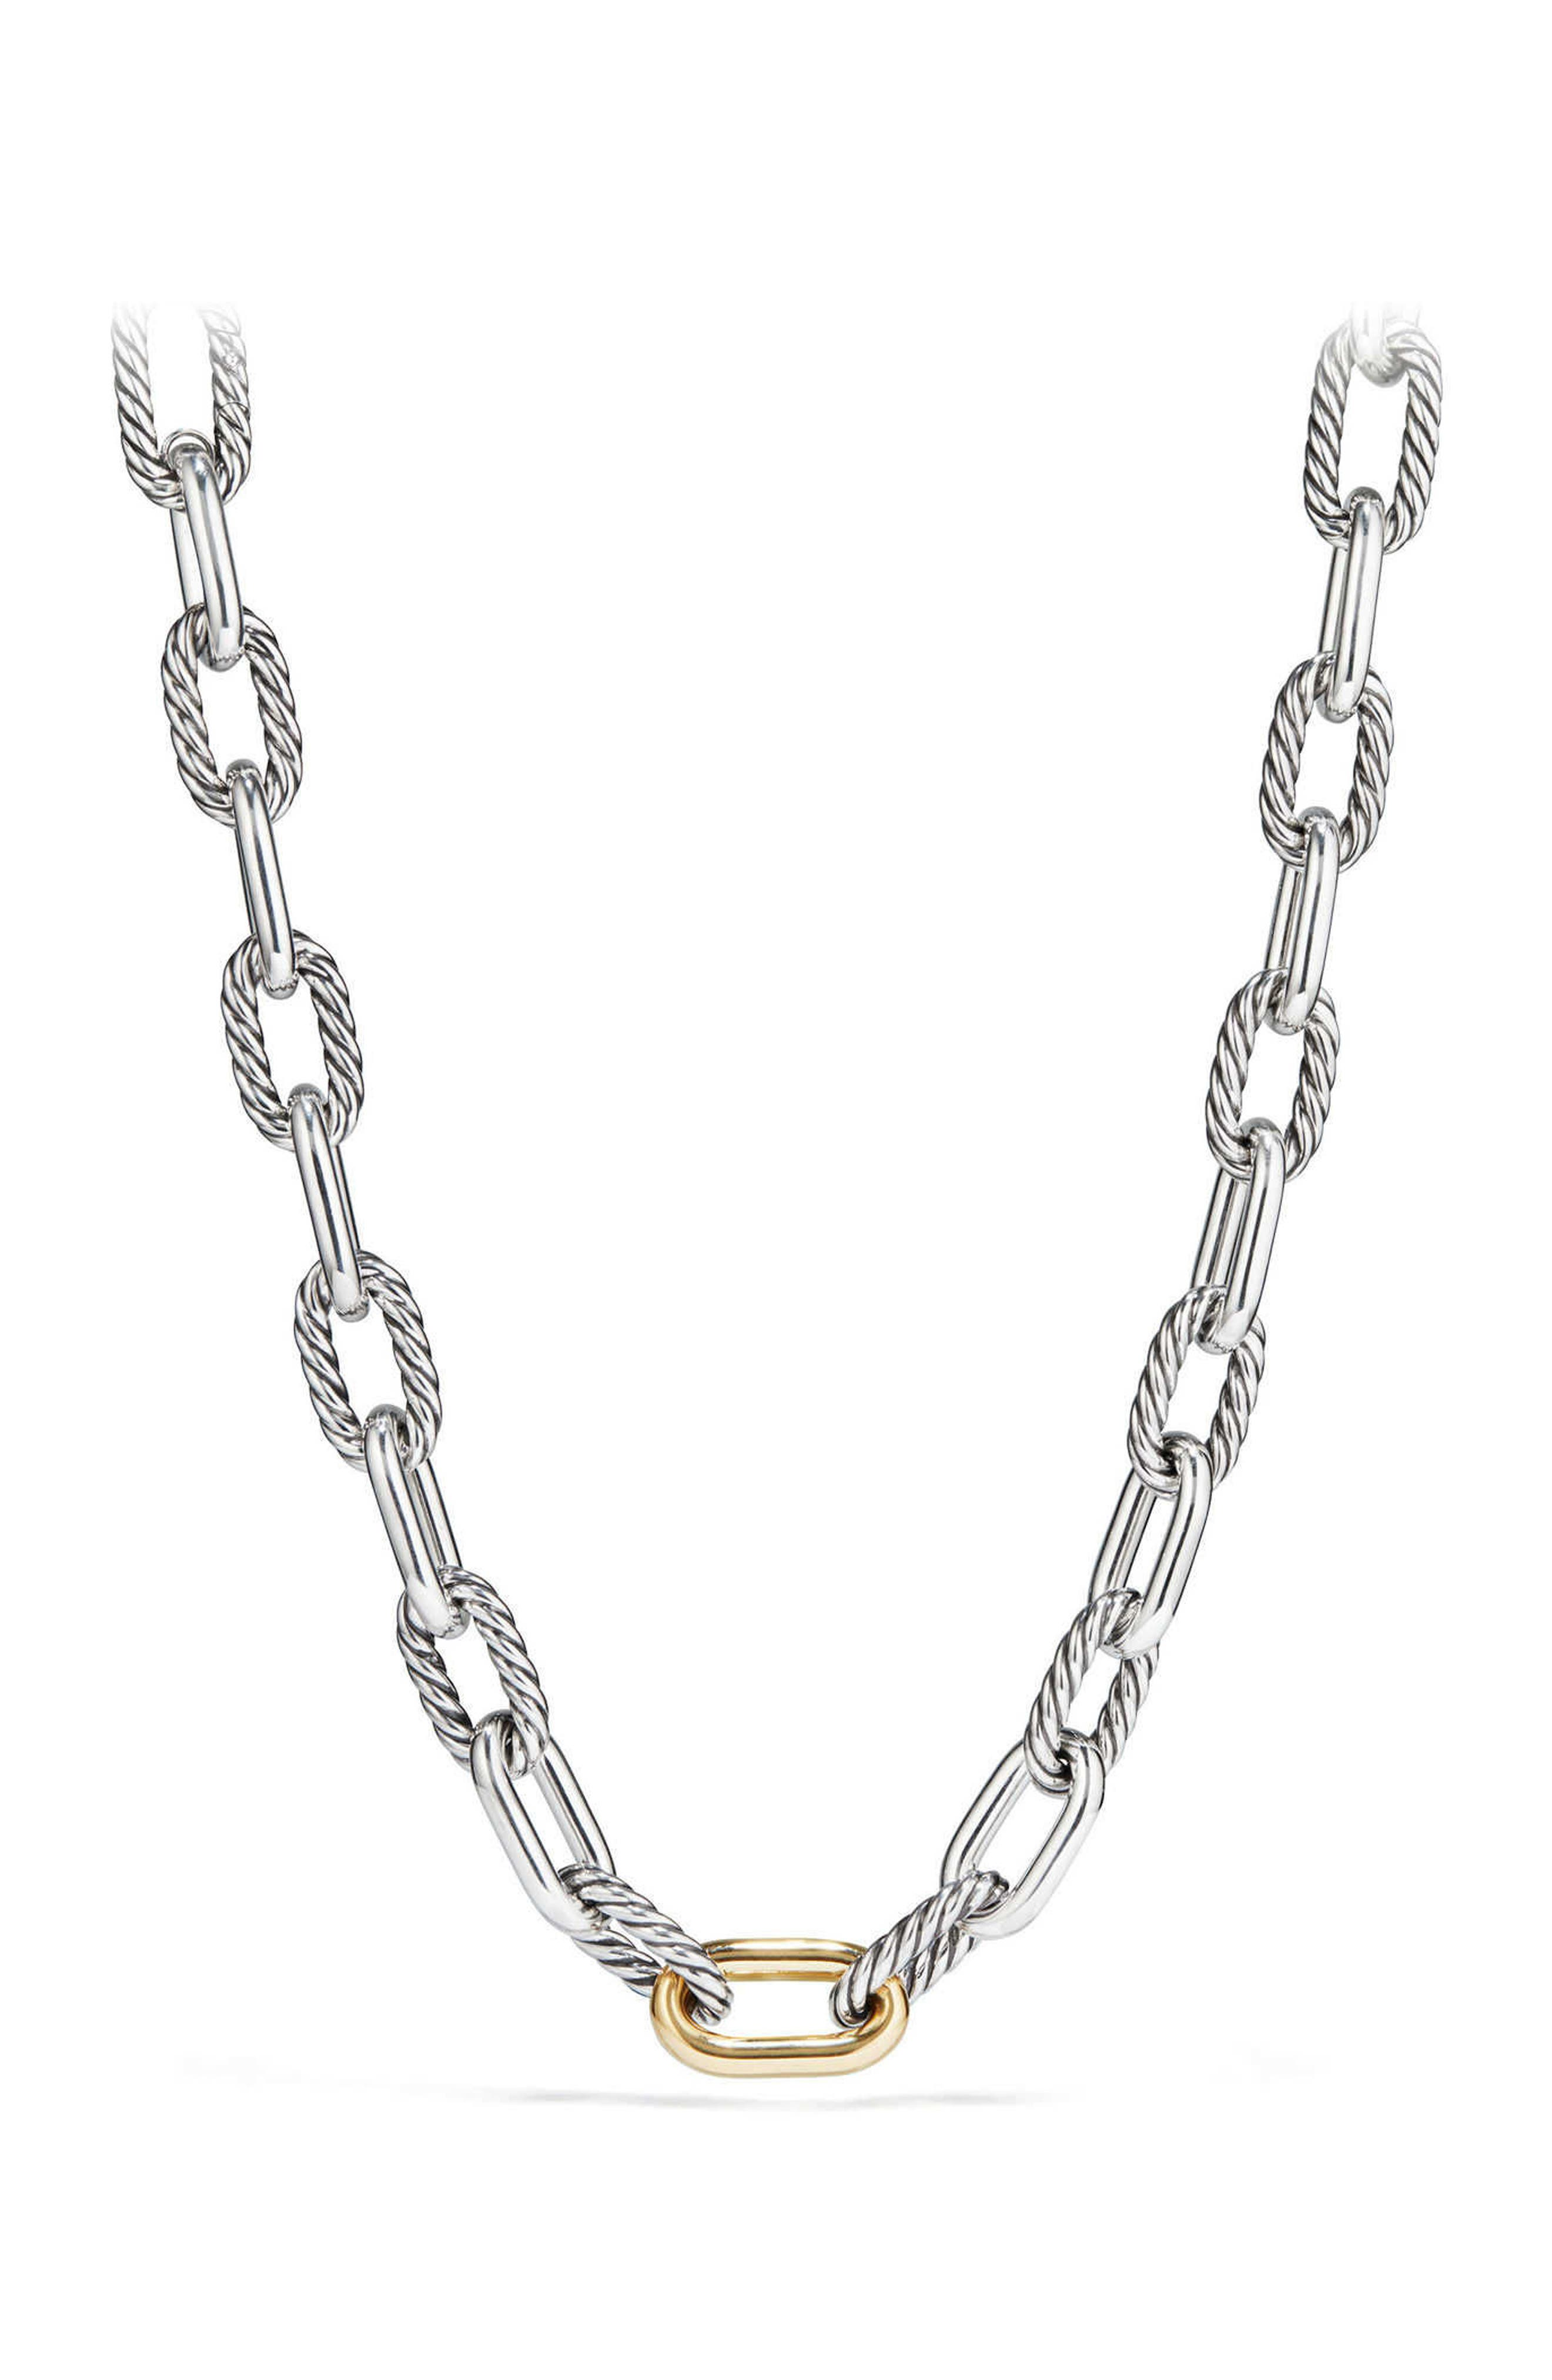 DY Madison Chain Large Necklace with 18K Gold,                         Main,                         color, SILVER/ GOLD